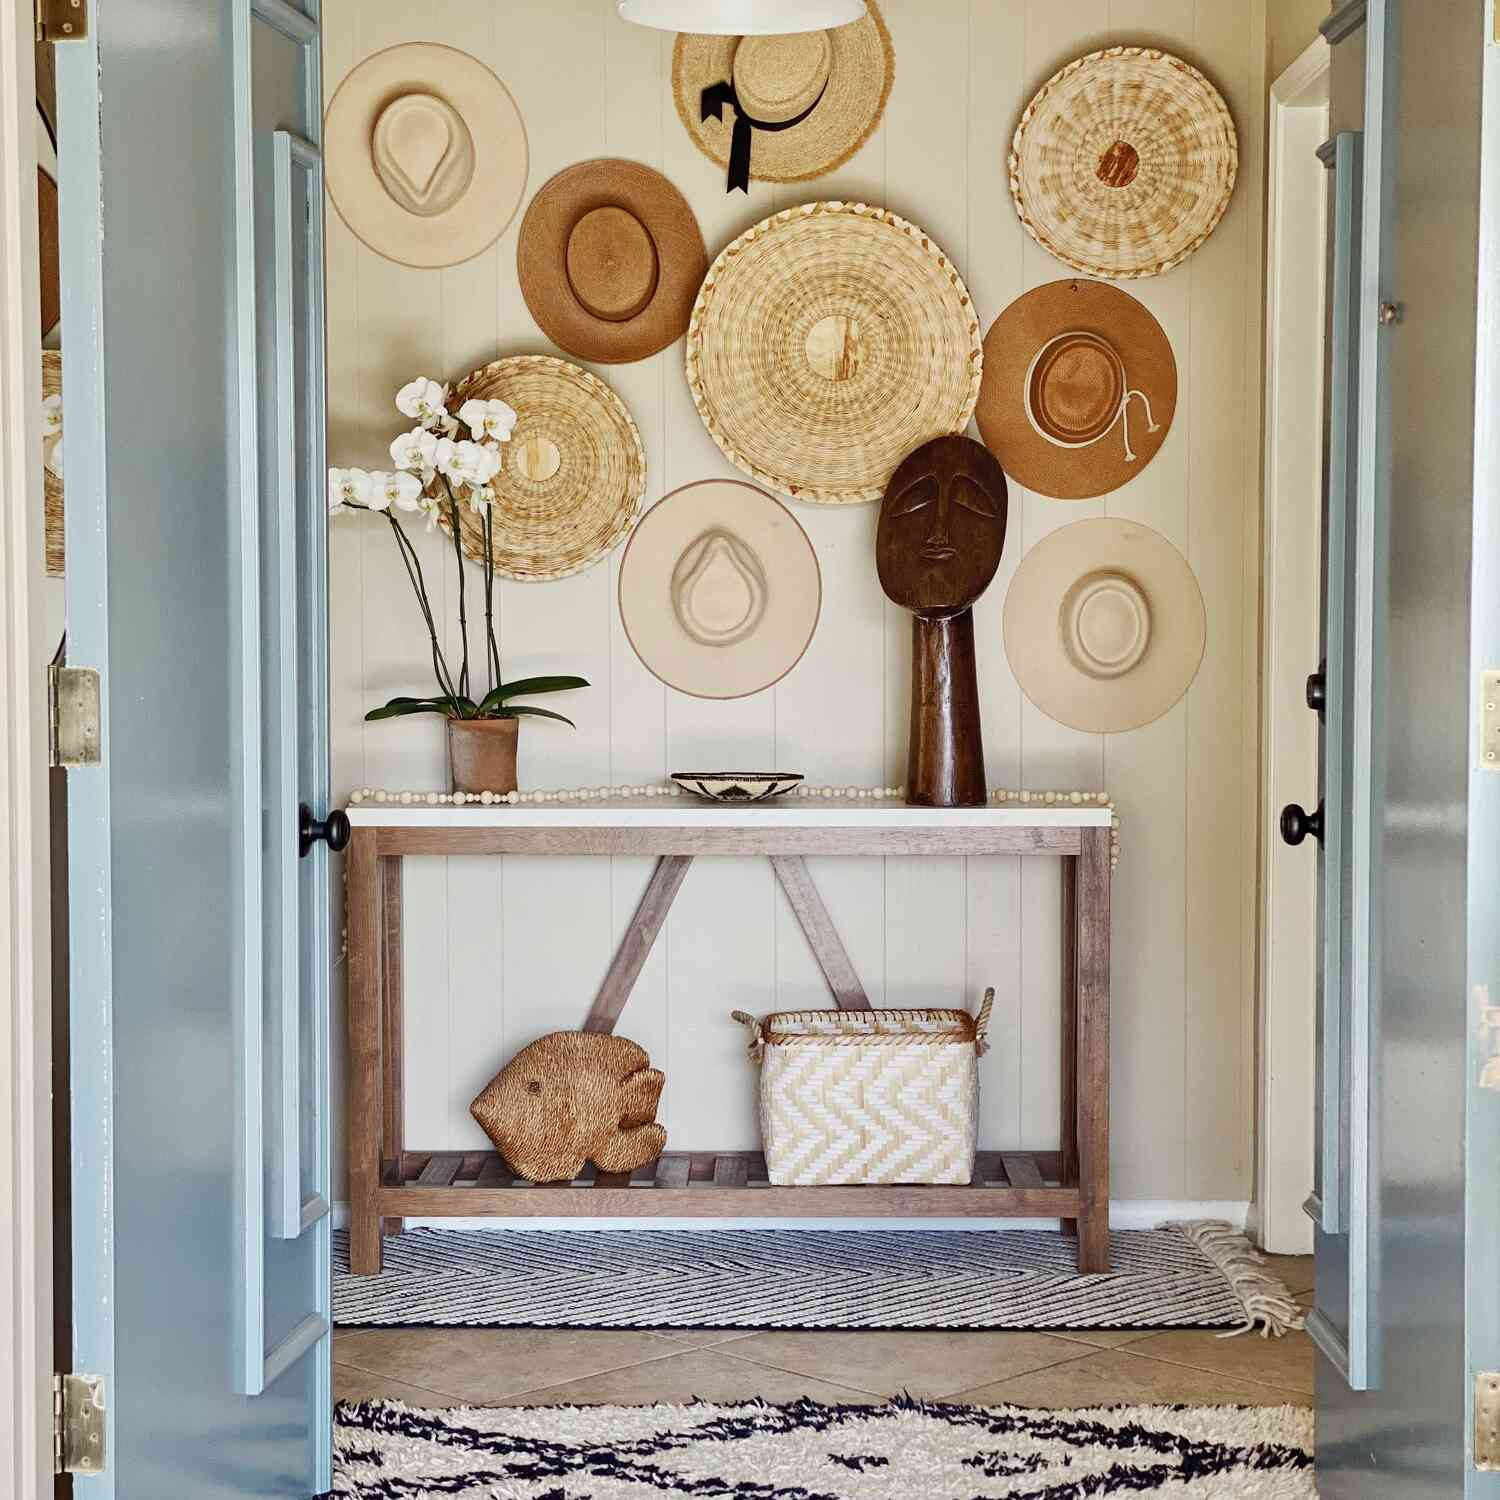 Boho chic entryway styled with woven elements and cultural decor